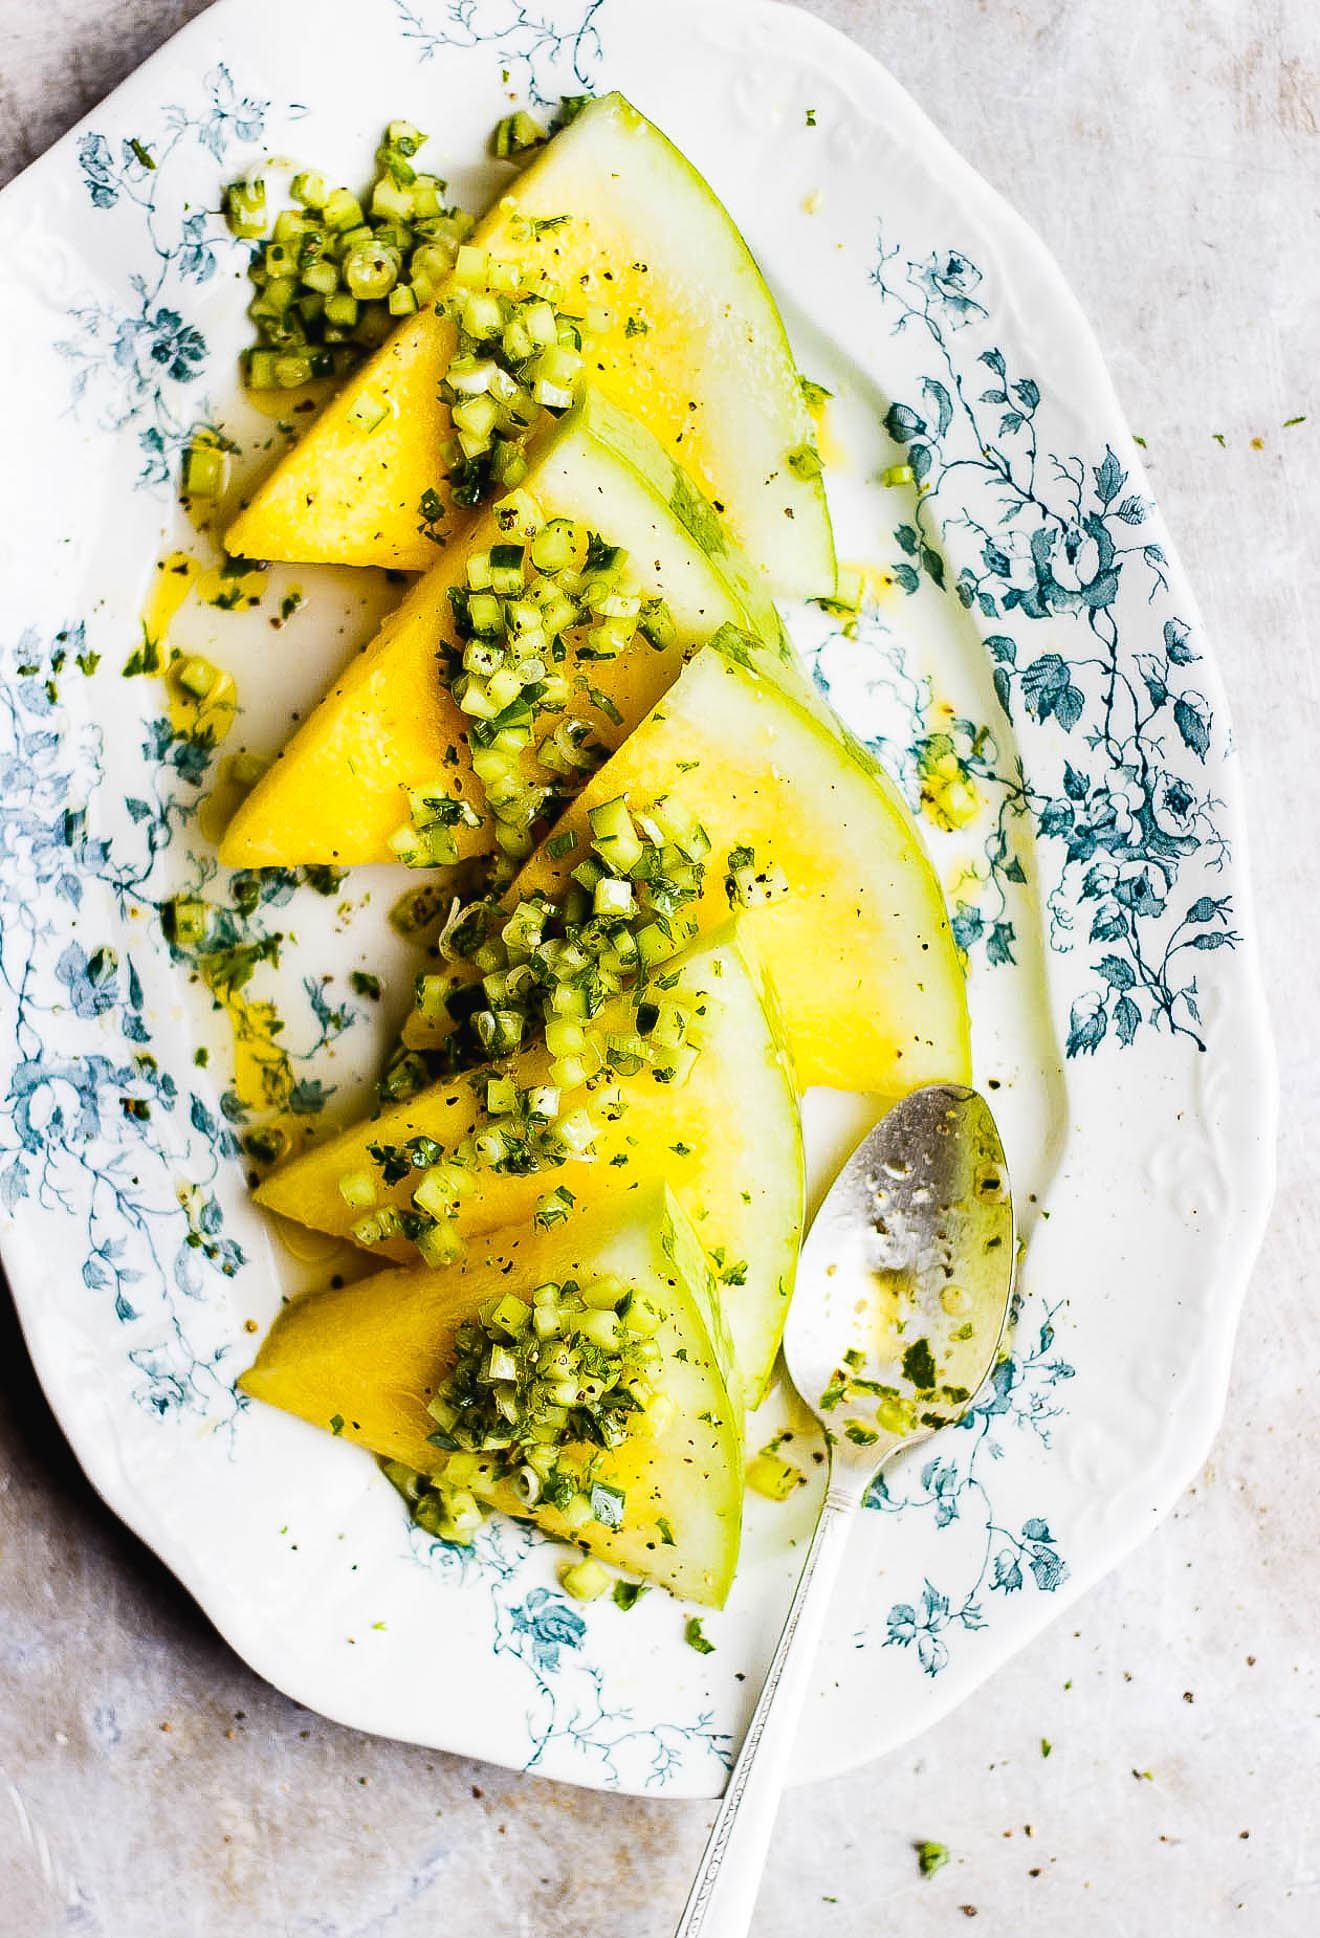 Yellow Watermelon Salad with Herby Cucumber Relish | Small diced cucumbers with fresh herbs and lots of olive oil and apple cider vinegar over a wedge of yellow watermelon for an easy yellow watermelon salad.